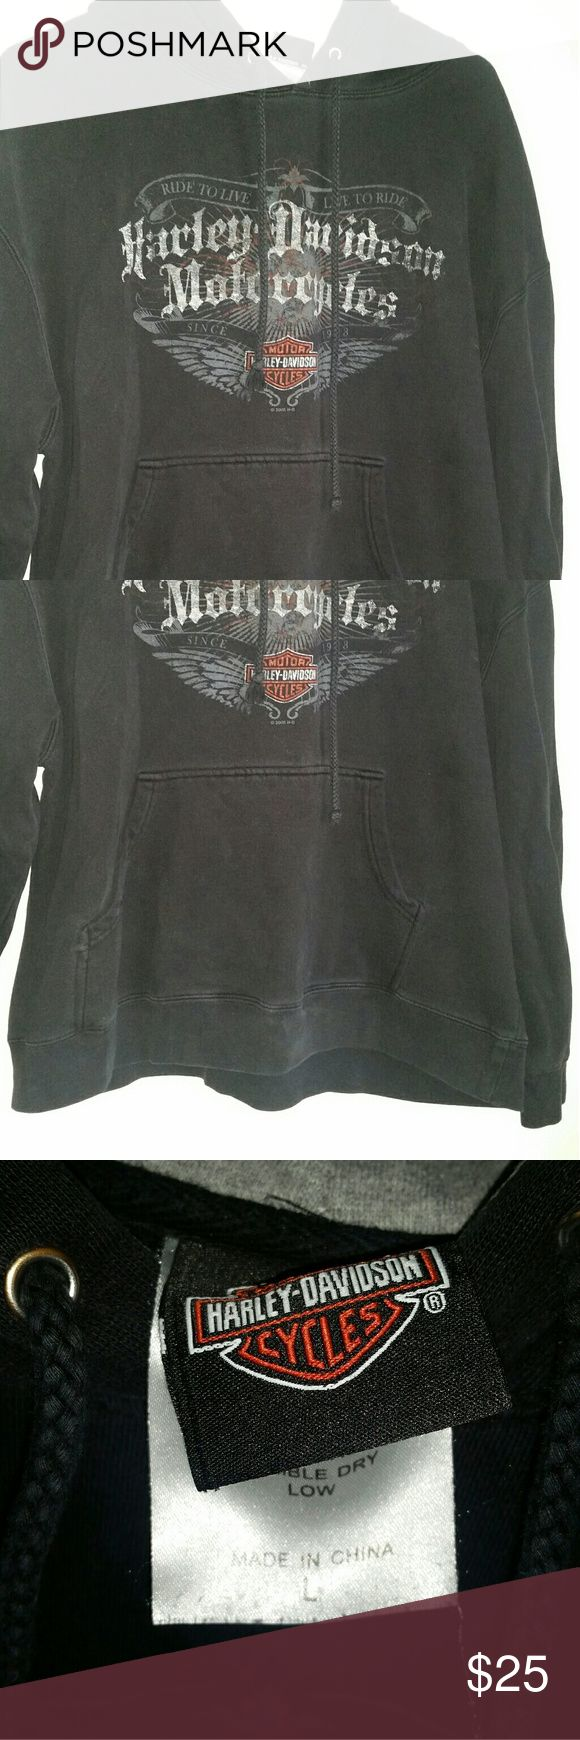 Harley Davidson Sweatshirt Really nice HD Sweatshirt. Little used but still great shape Harley-Davidson Tops Sweatshirts & Hoodies